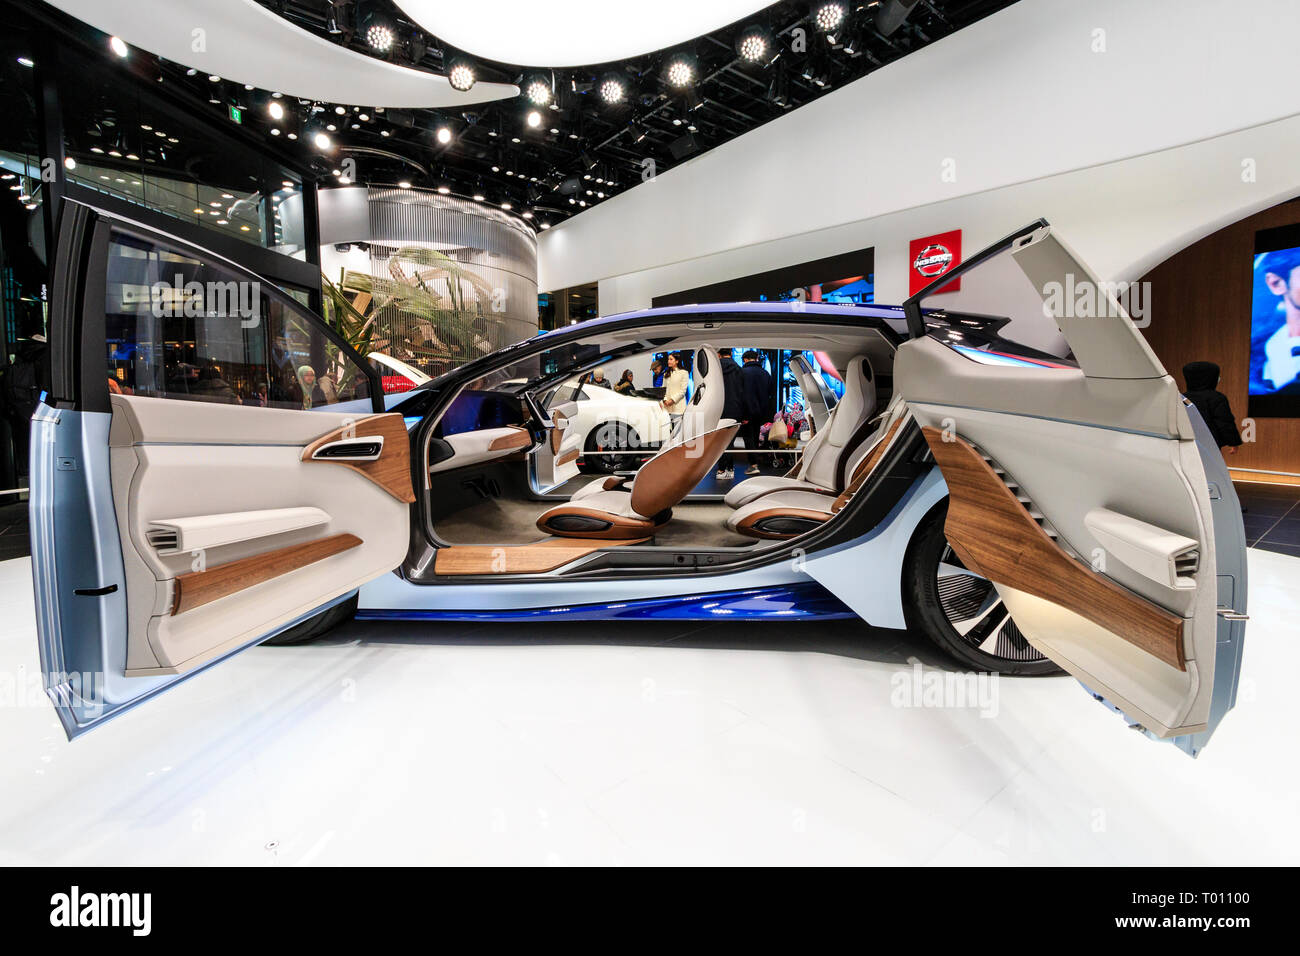 Nissan flagship showroom on the Ginza in Tokyo. Display of the concept car, the electric Nissan IDS, with open doors on roped off white circle area. - Stock Image